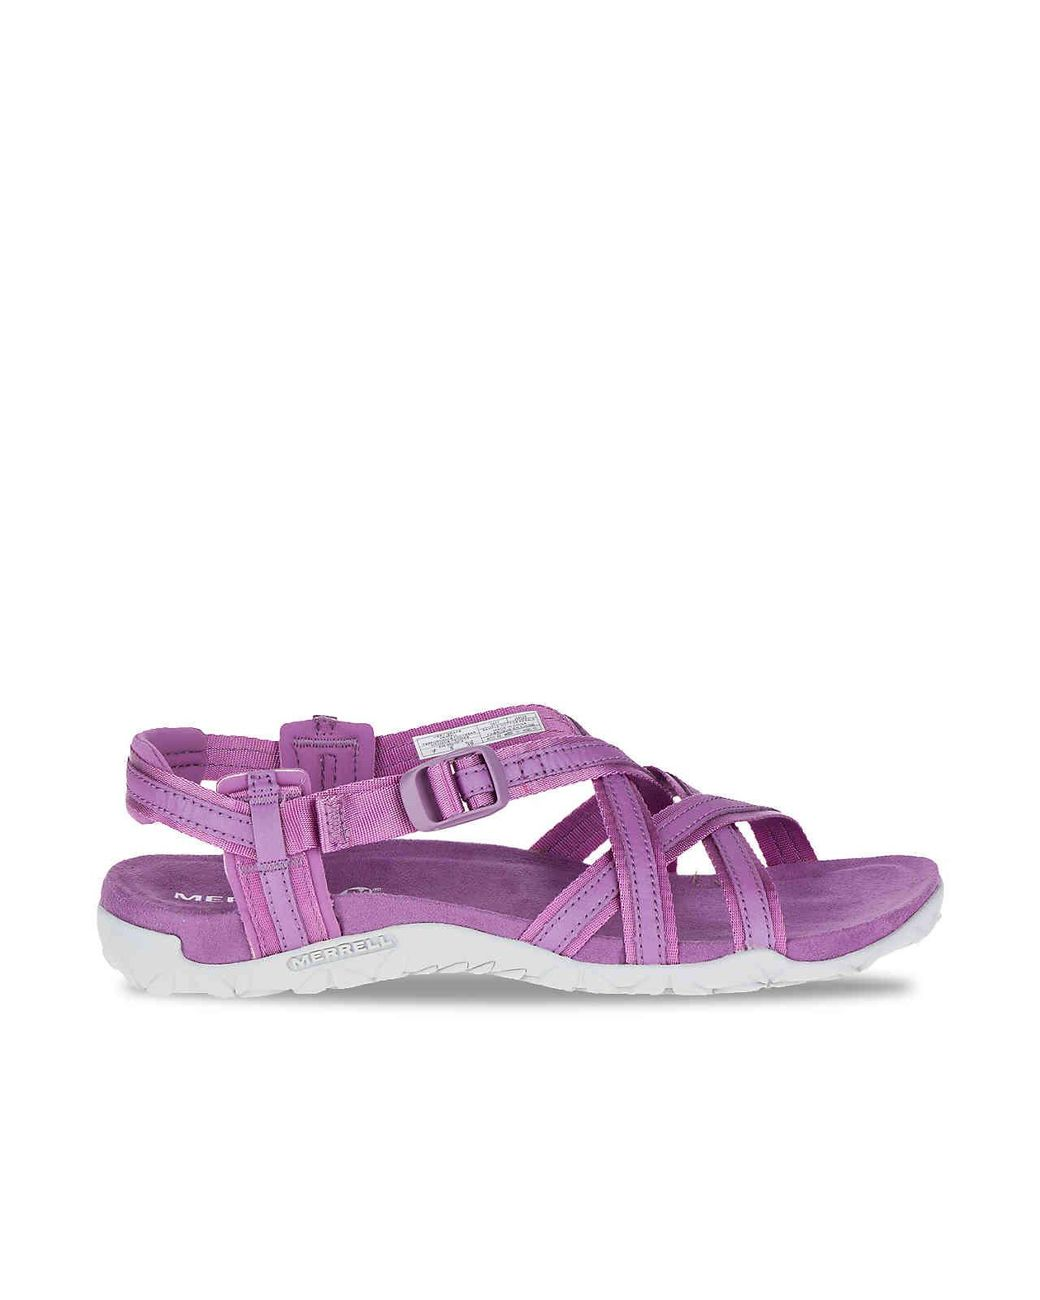 Lattice Terran Women's Ari Purple Sandal Sport qMVSUzGp